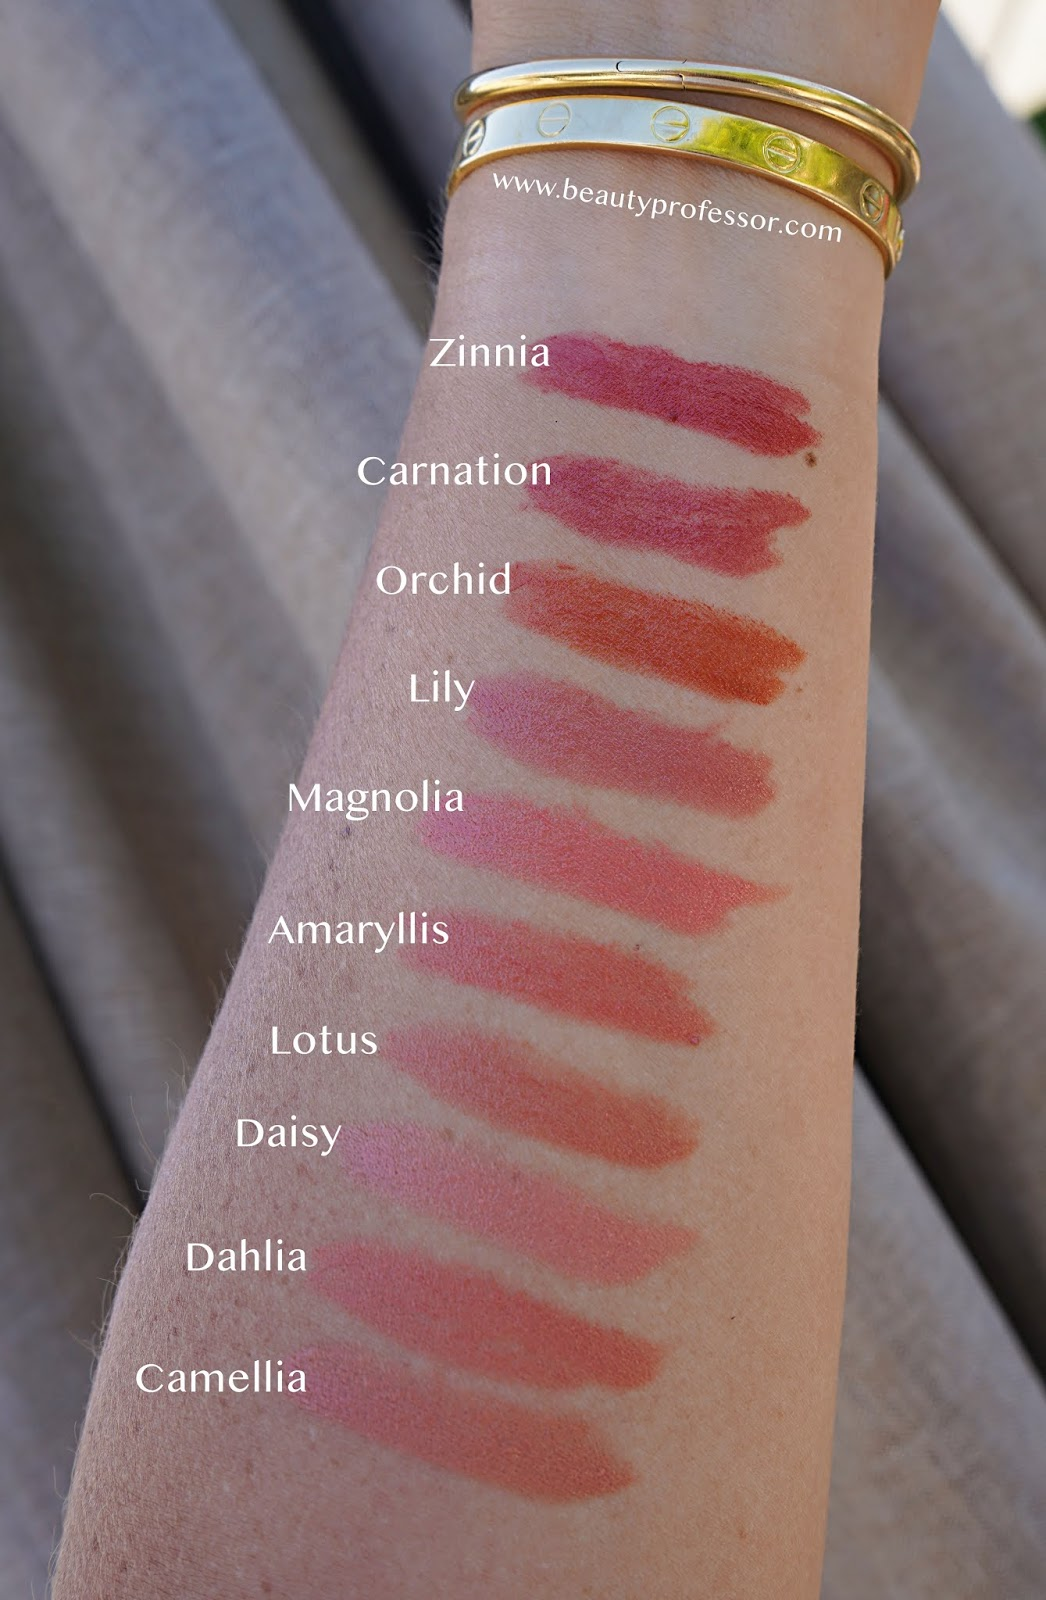 Wayne Goss lip collection swatches